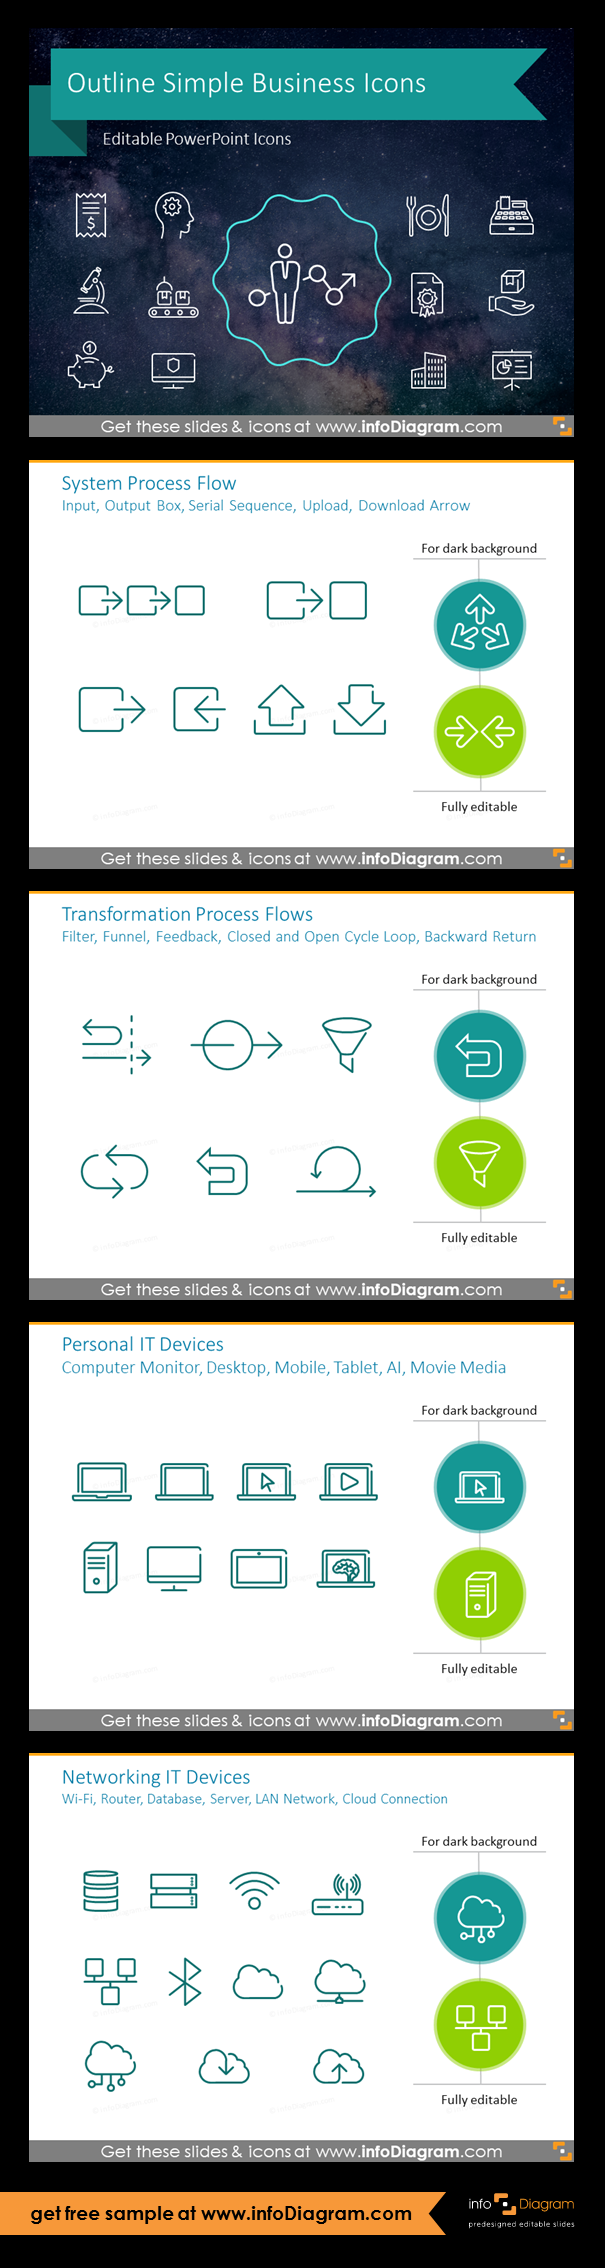 600 Outline Ppt Business Icons Library For Modern Powerpoint Infographics Business Icon Infographic Outline